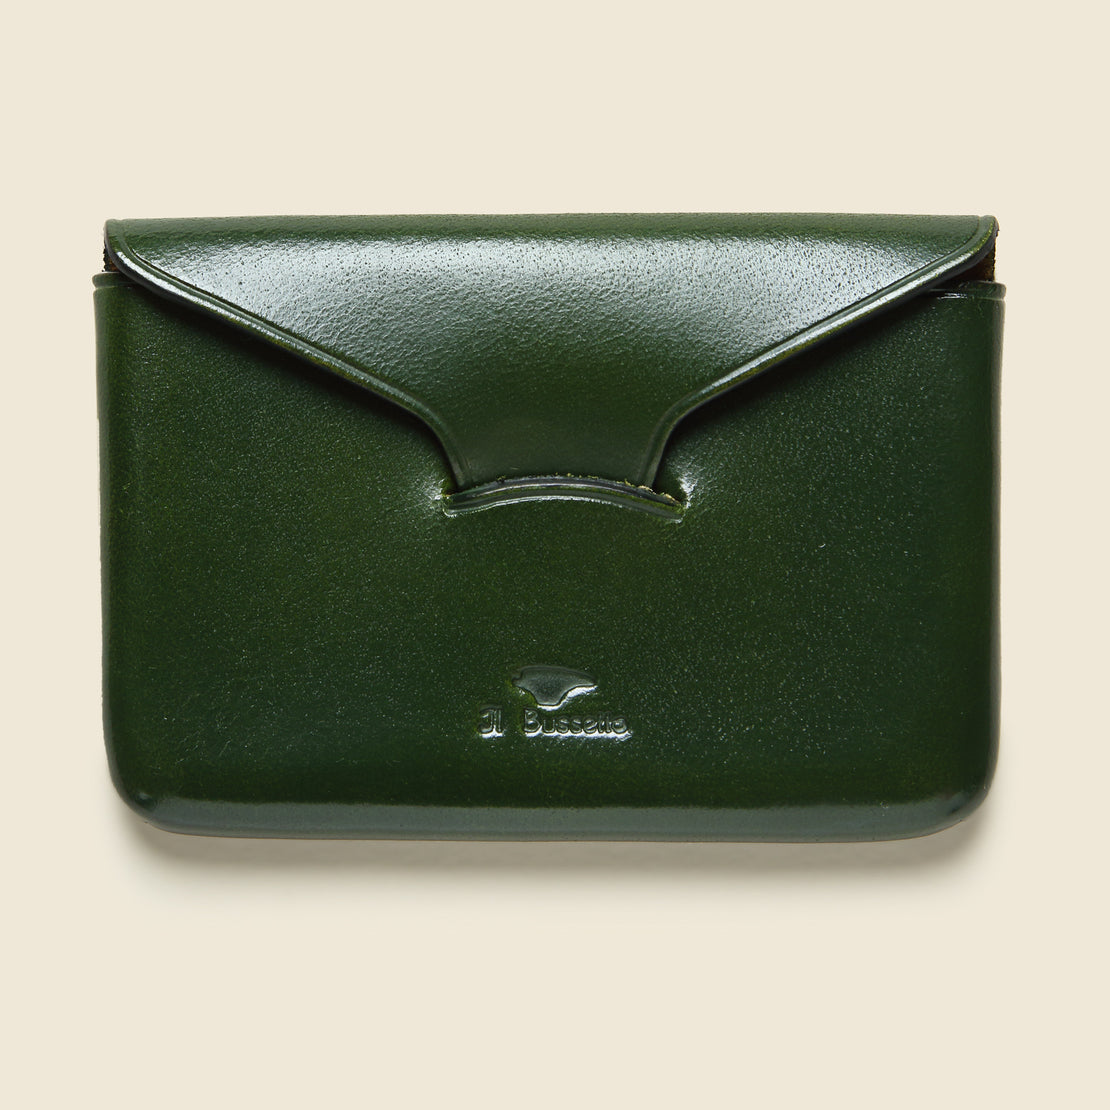 Il Bussetto Business Card Holder - Green